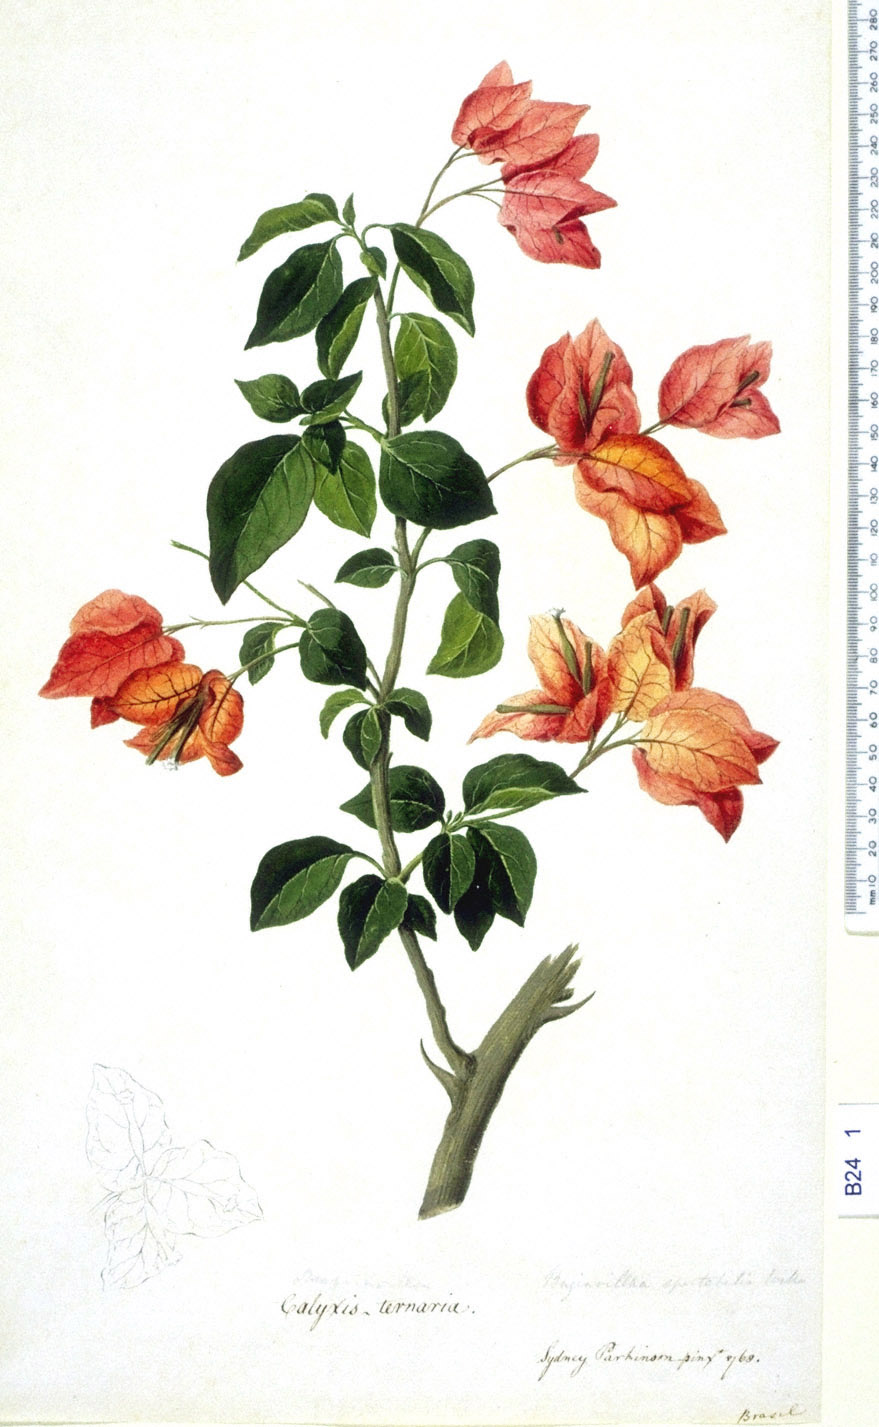 Bougainvillea Spectabilis - approx. actual size - this image digitally watermarked and copyright NHM